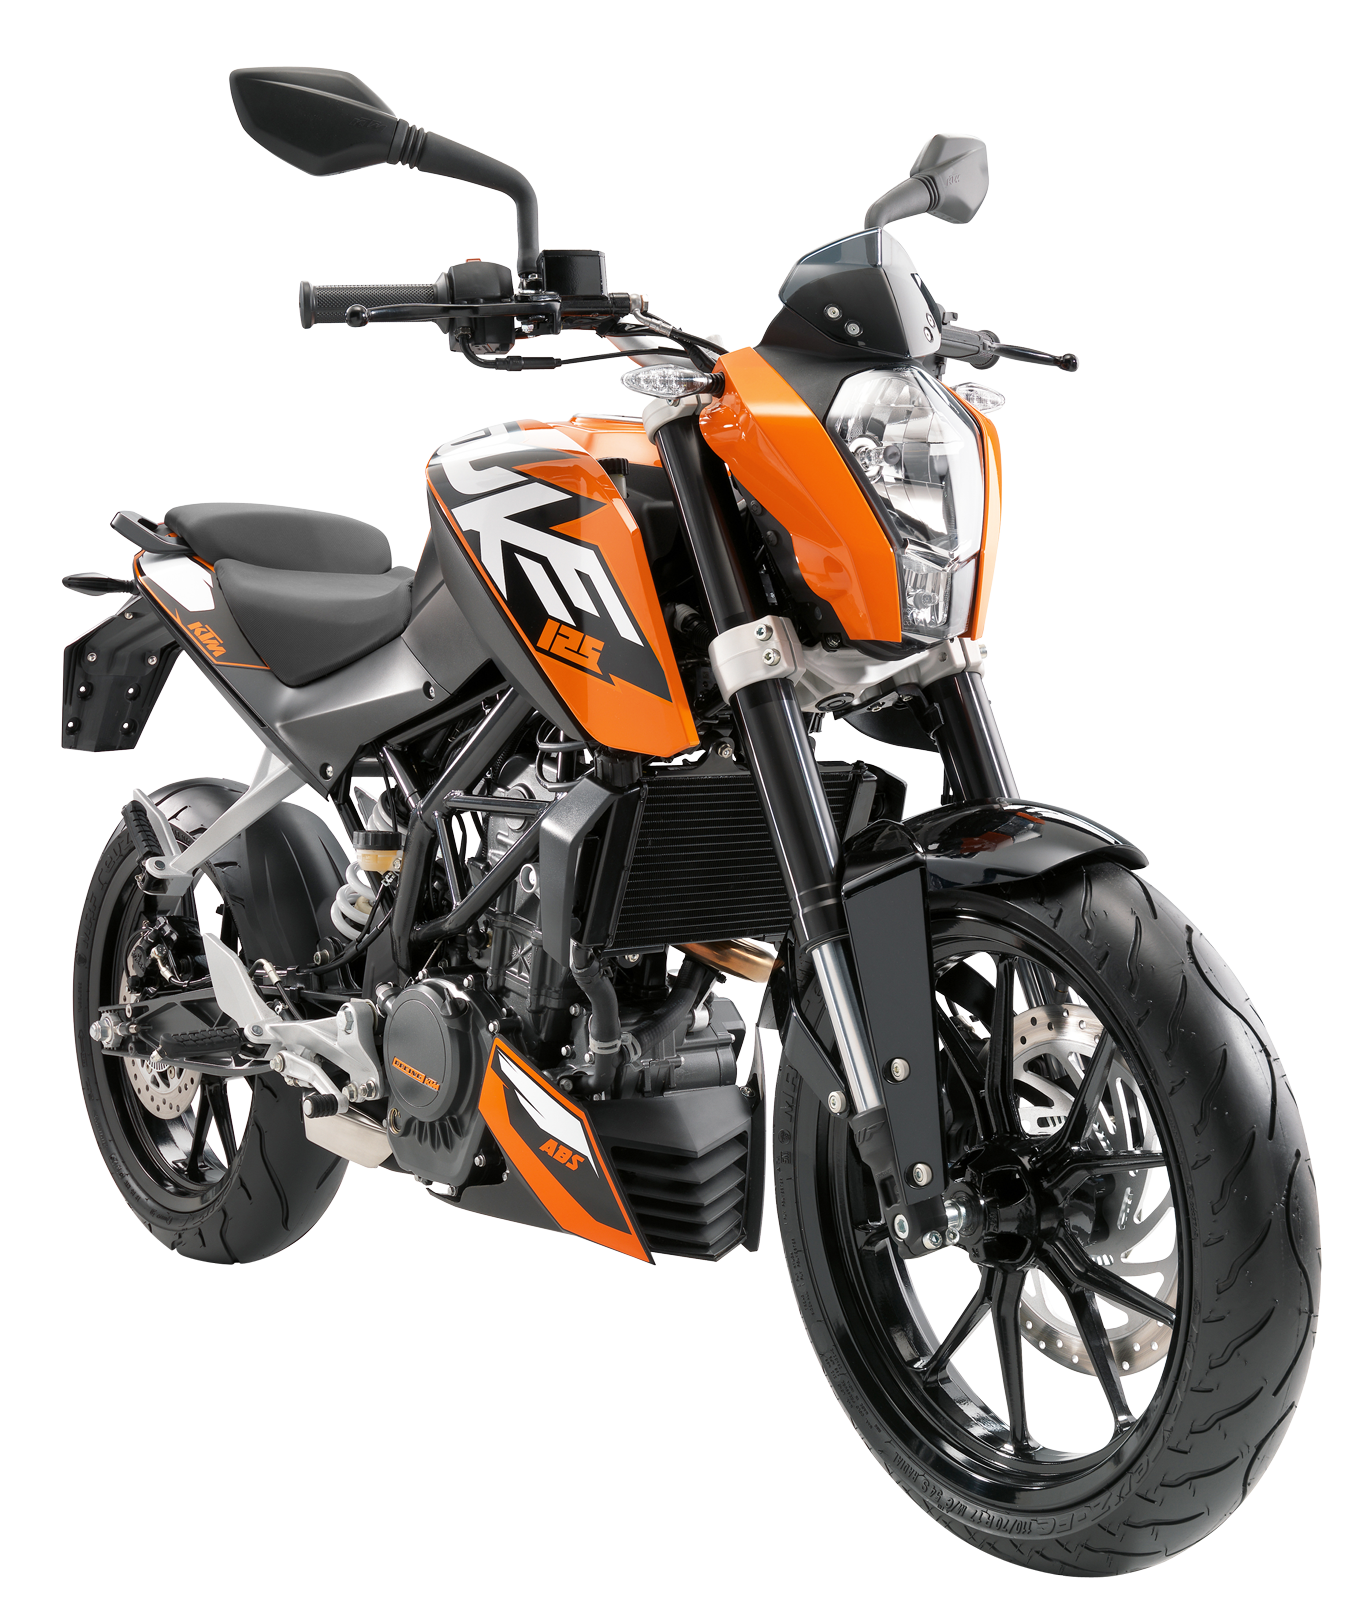 Ktm duke bike png. Motorcycle clipart scooty